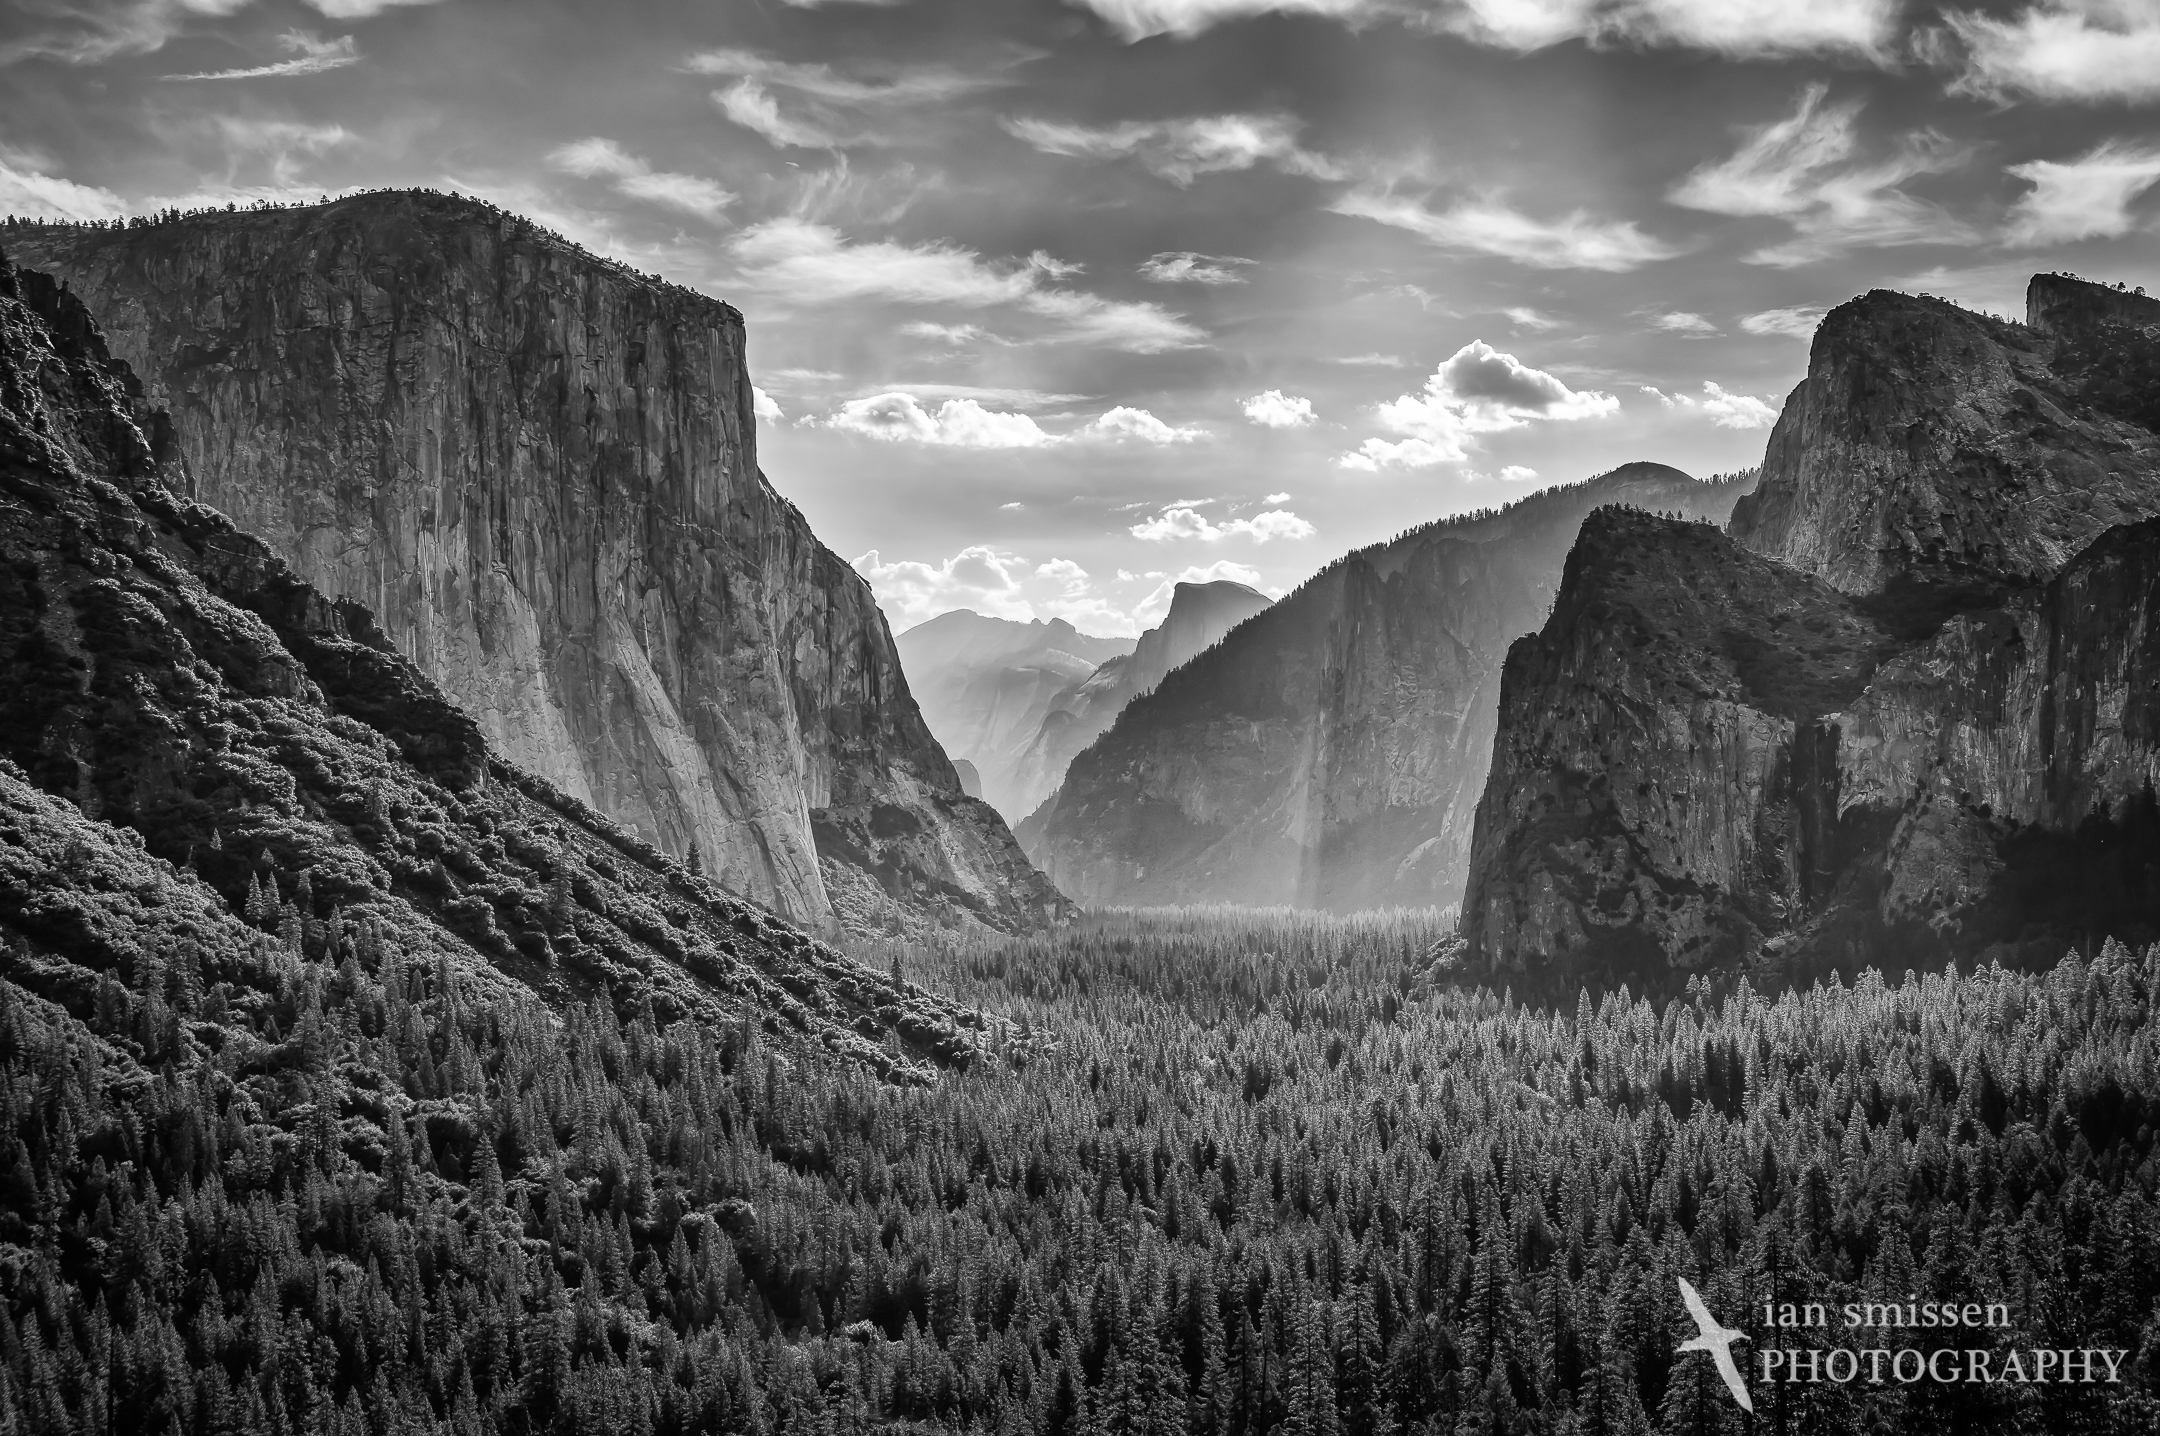 Yosemite Valley from Inspiration Point